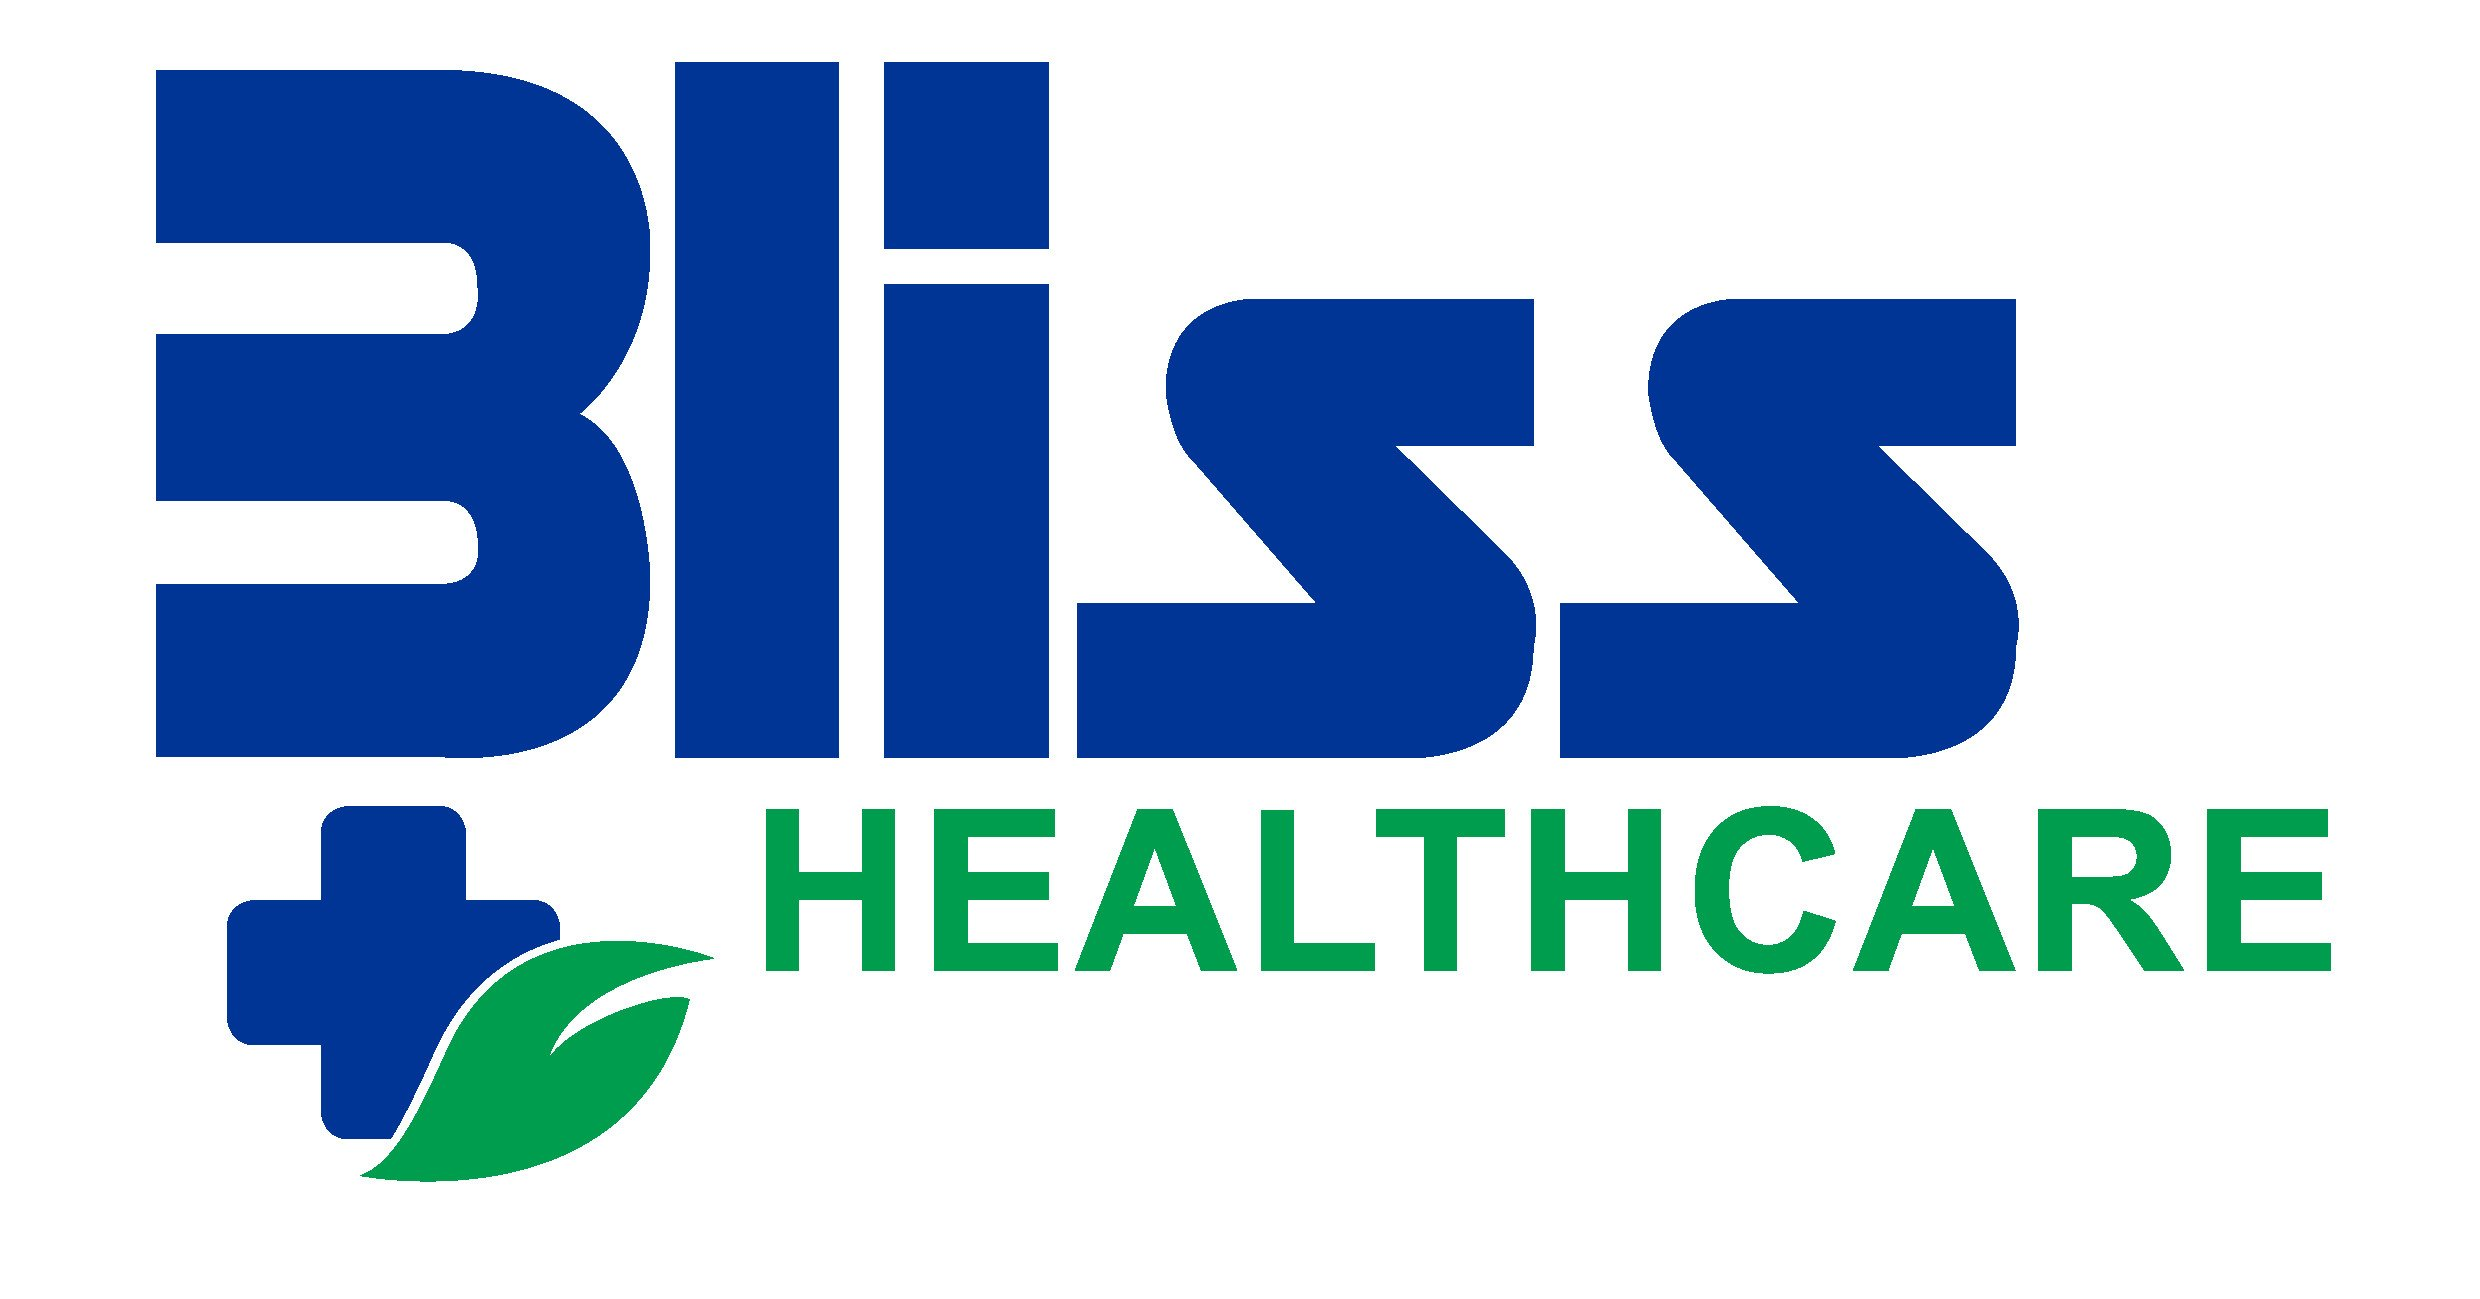 Bliss Healthcare Ltd